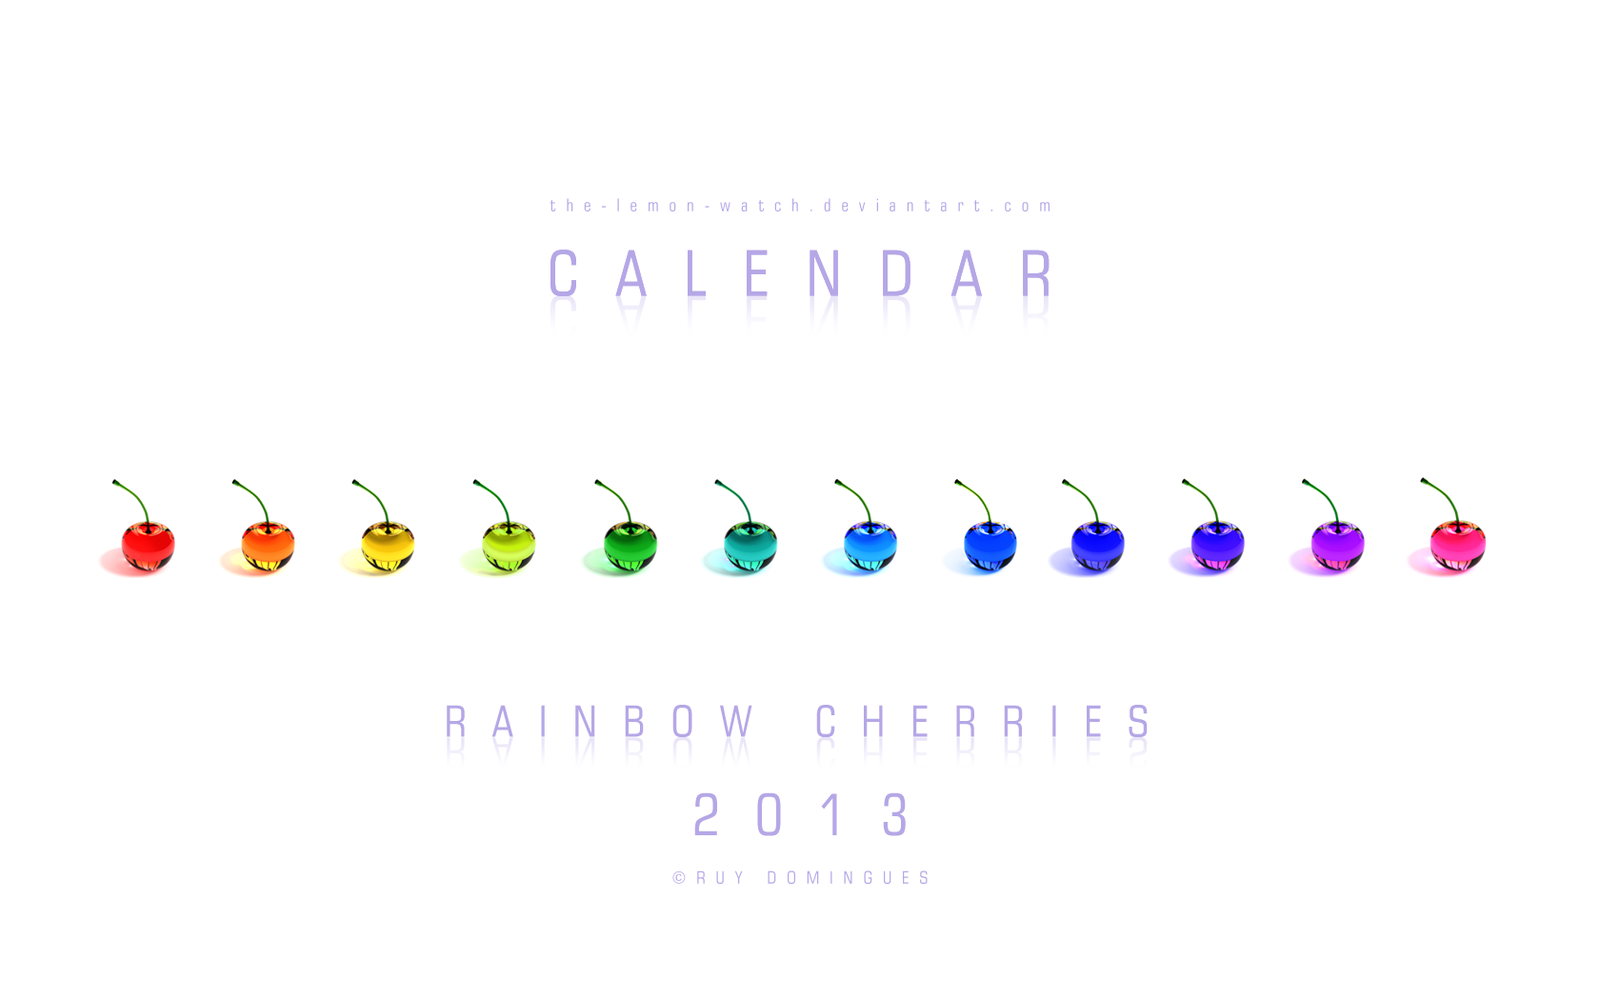 Rainbow Cherries - 2013 Calendar by THE-LEMON-WATCH